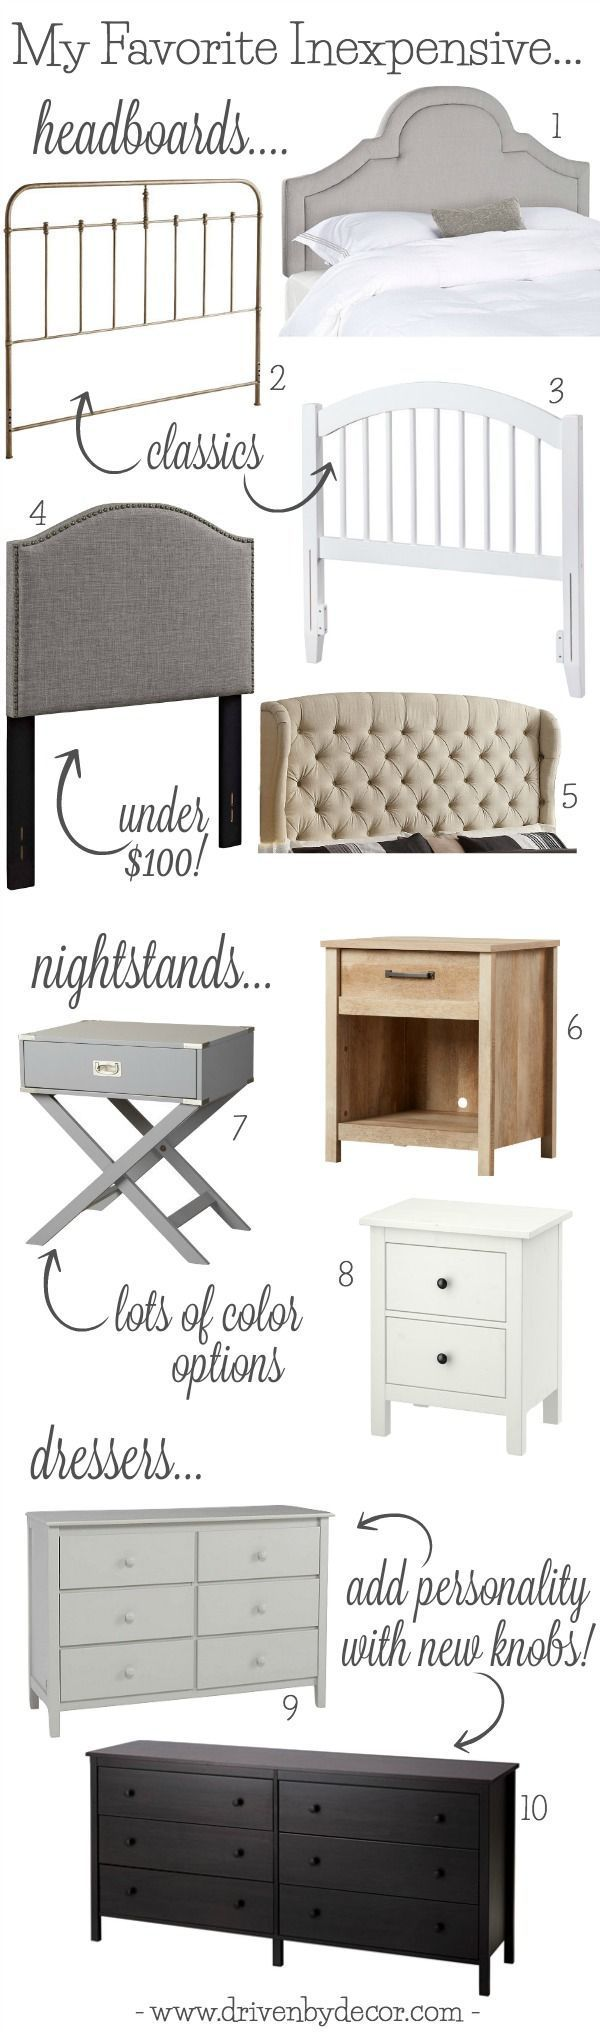 Best 25+ Boys bedroom furniture ideas on Pinterest | Boy teen room ...